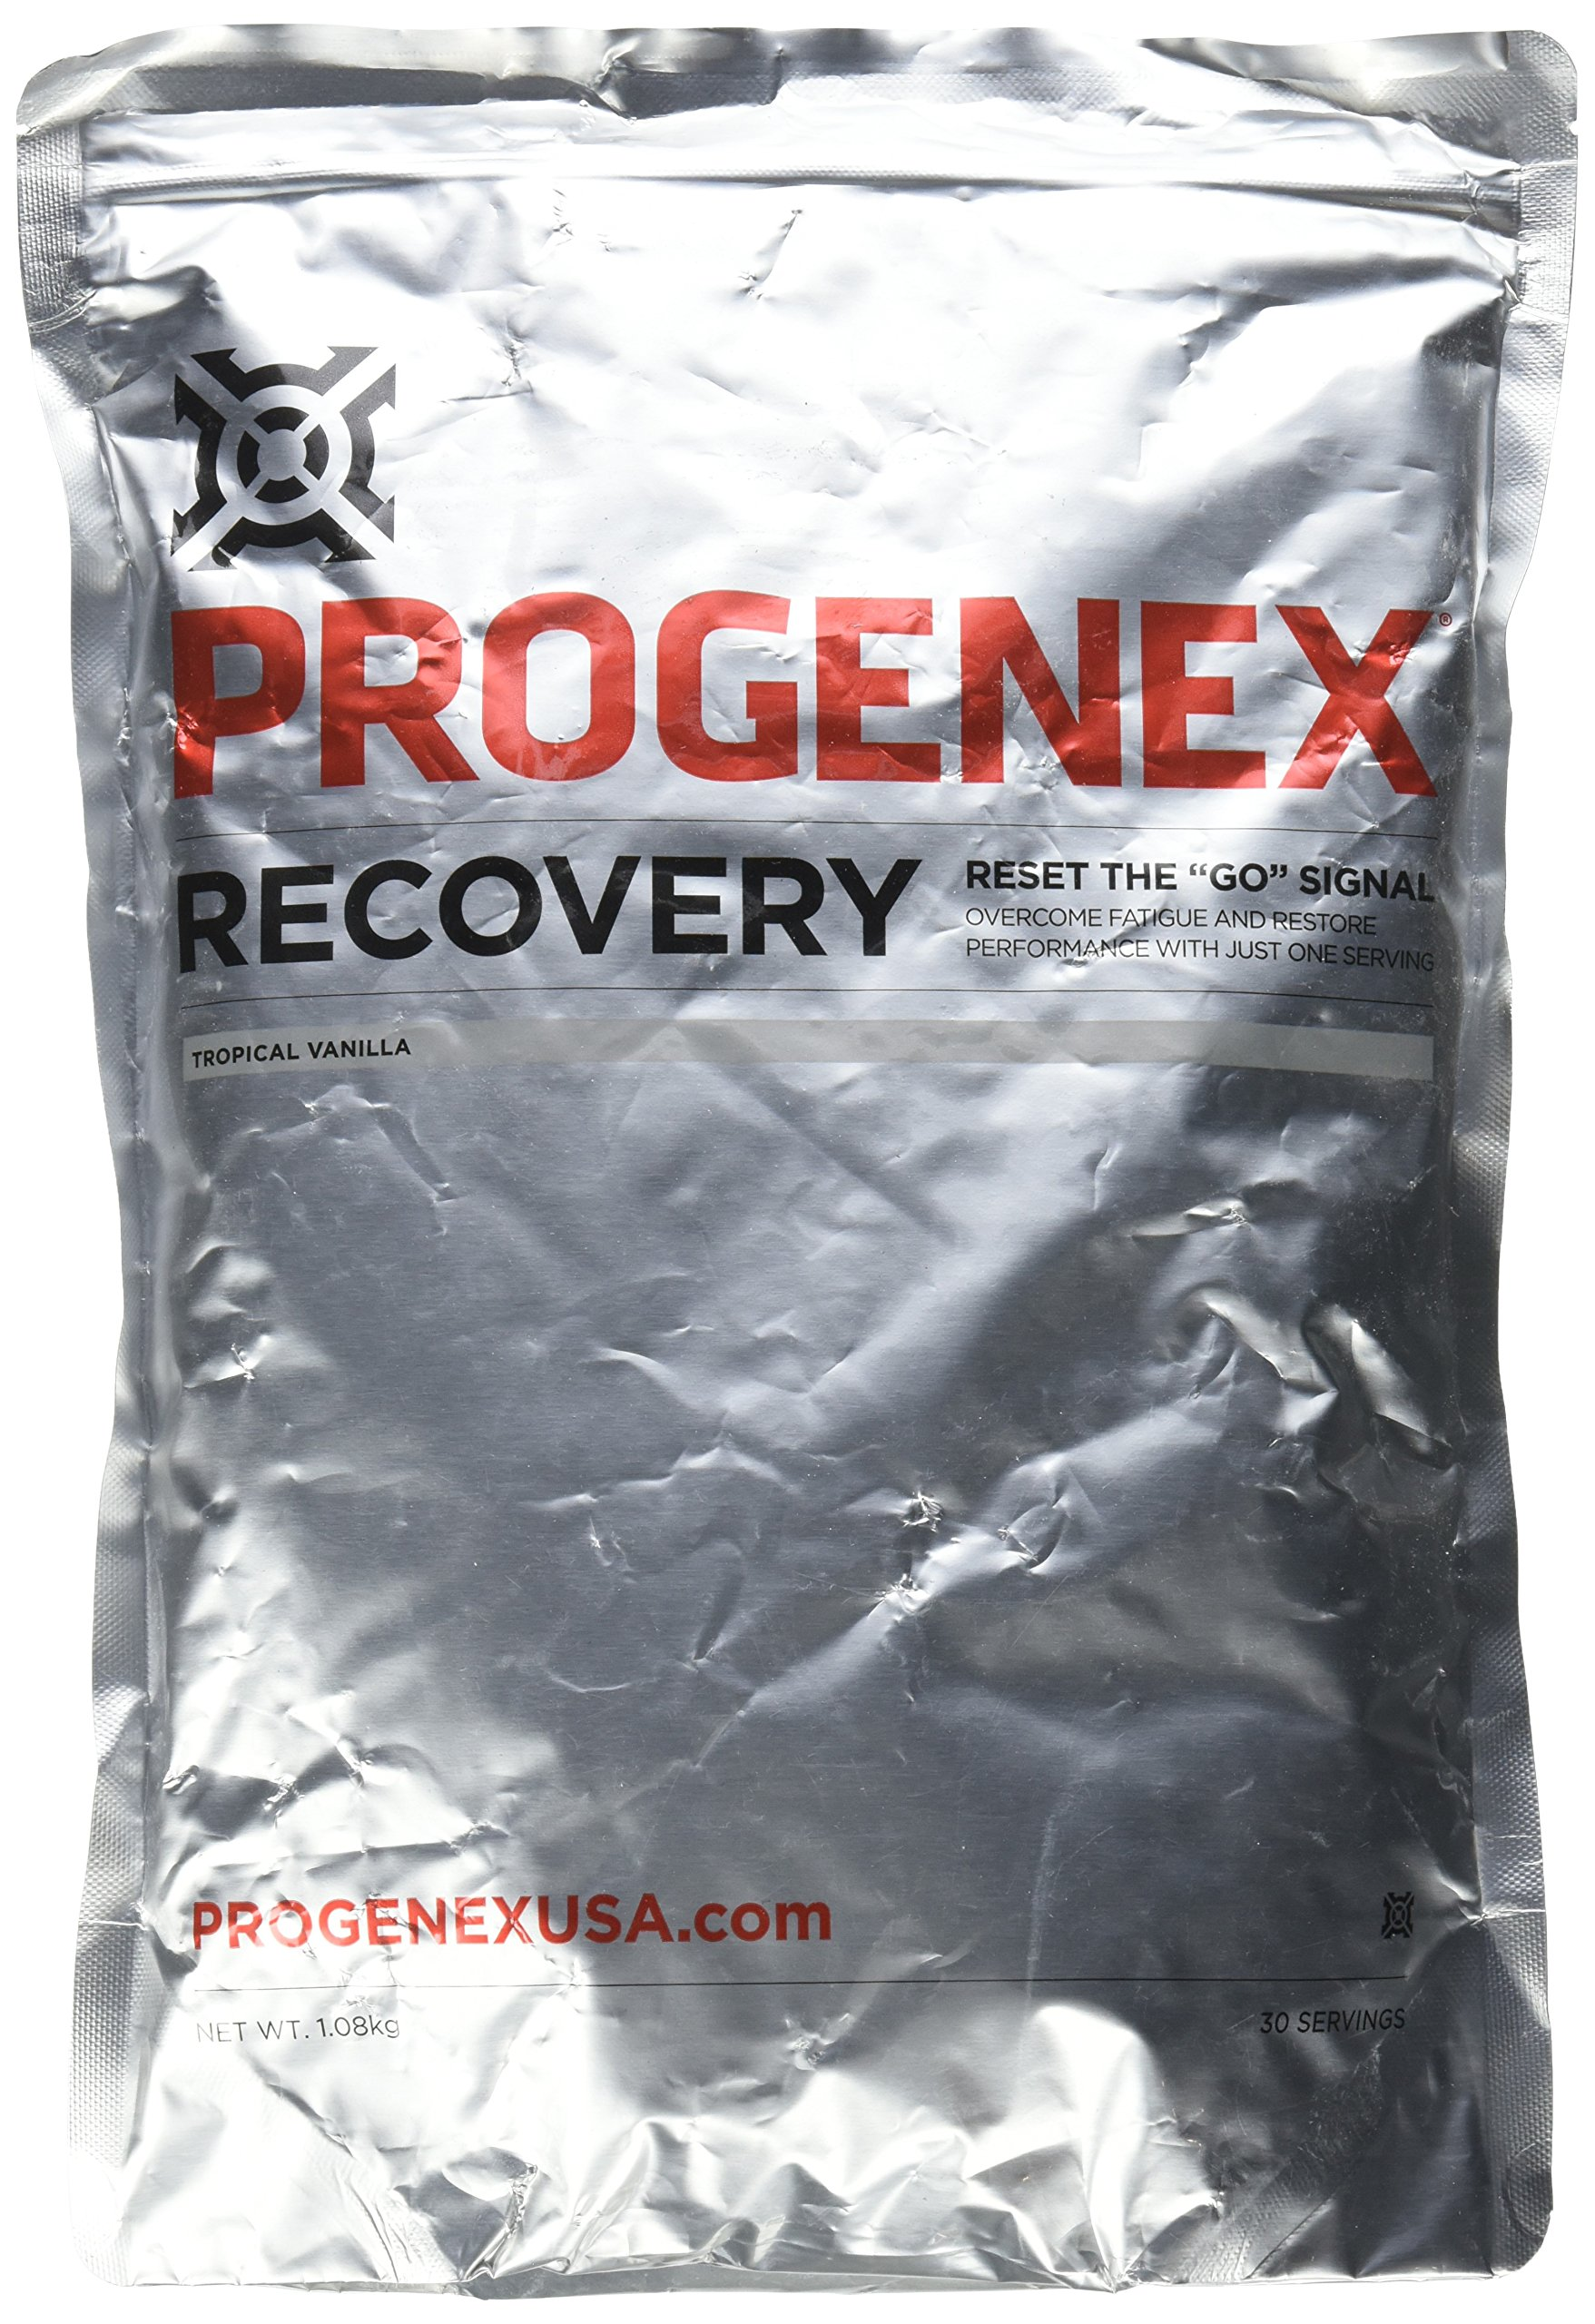 PROGENEX® Recovery | Best Post Workout Supplement | Hydrolyzed Whey Protein Shake Drink Mix | Help Sore Muscles | Tastes Great | Incredible Results | 30 Servings, Tropical Vanilla